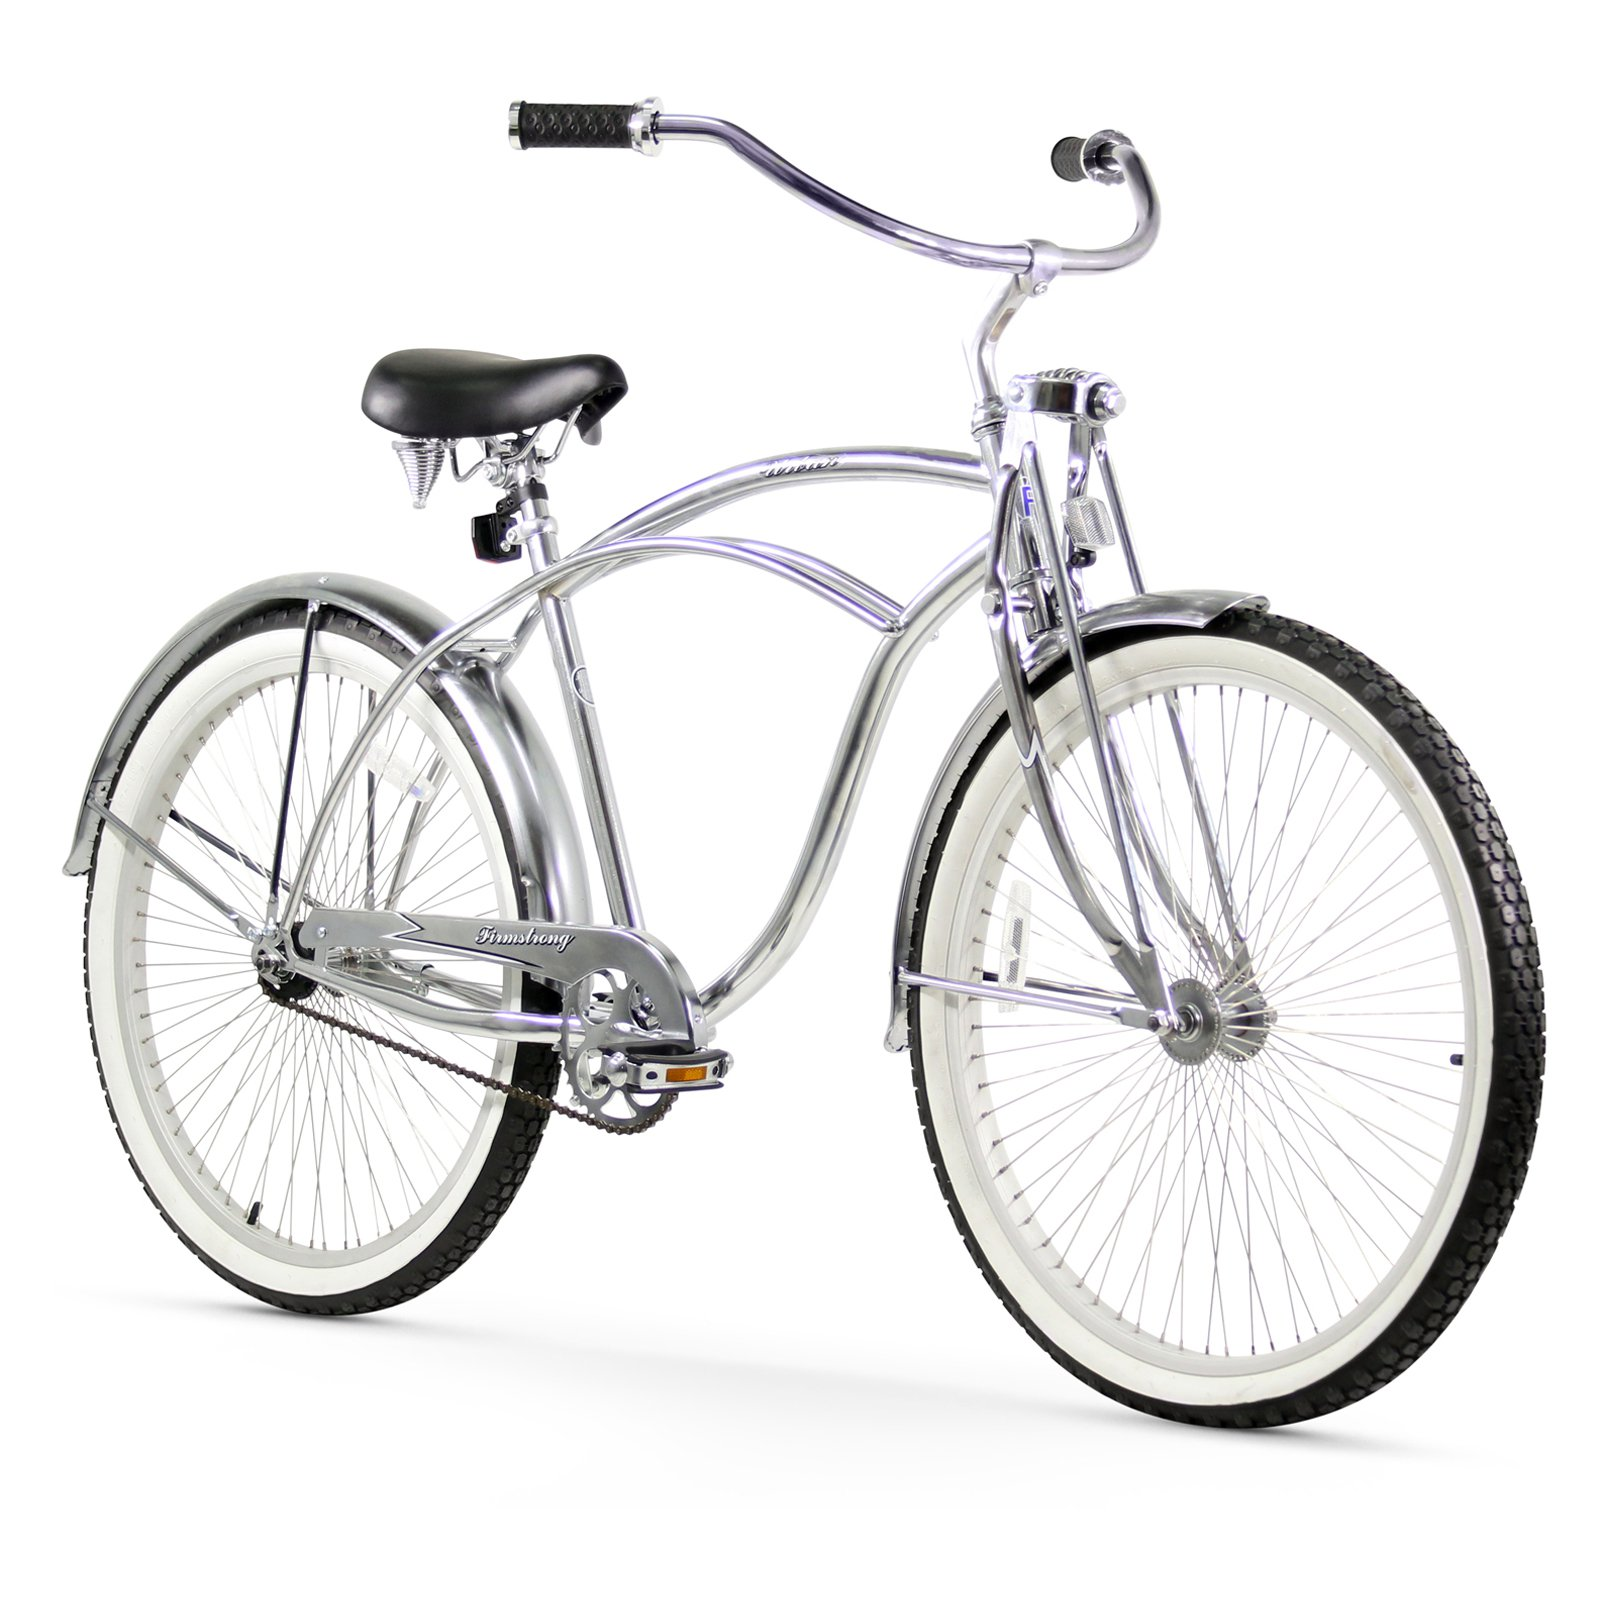 "Firmstrong 26"" Men's Urban LRD Beach Cruiser Bicycle, 1 Speed"